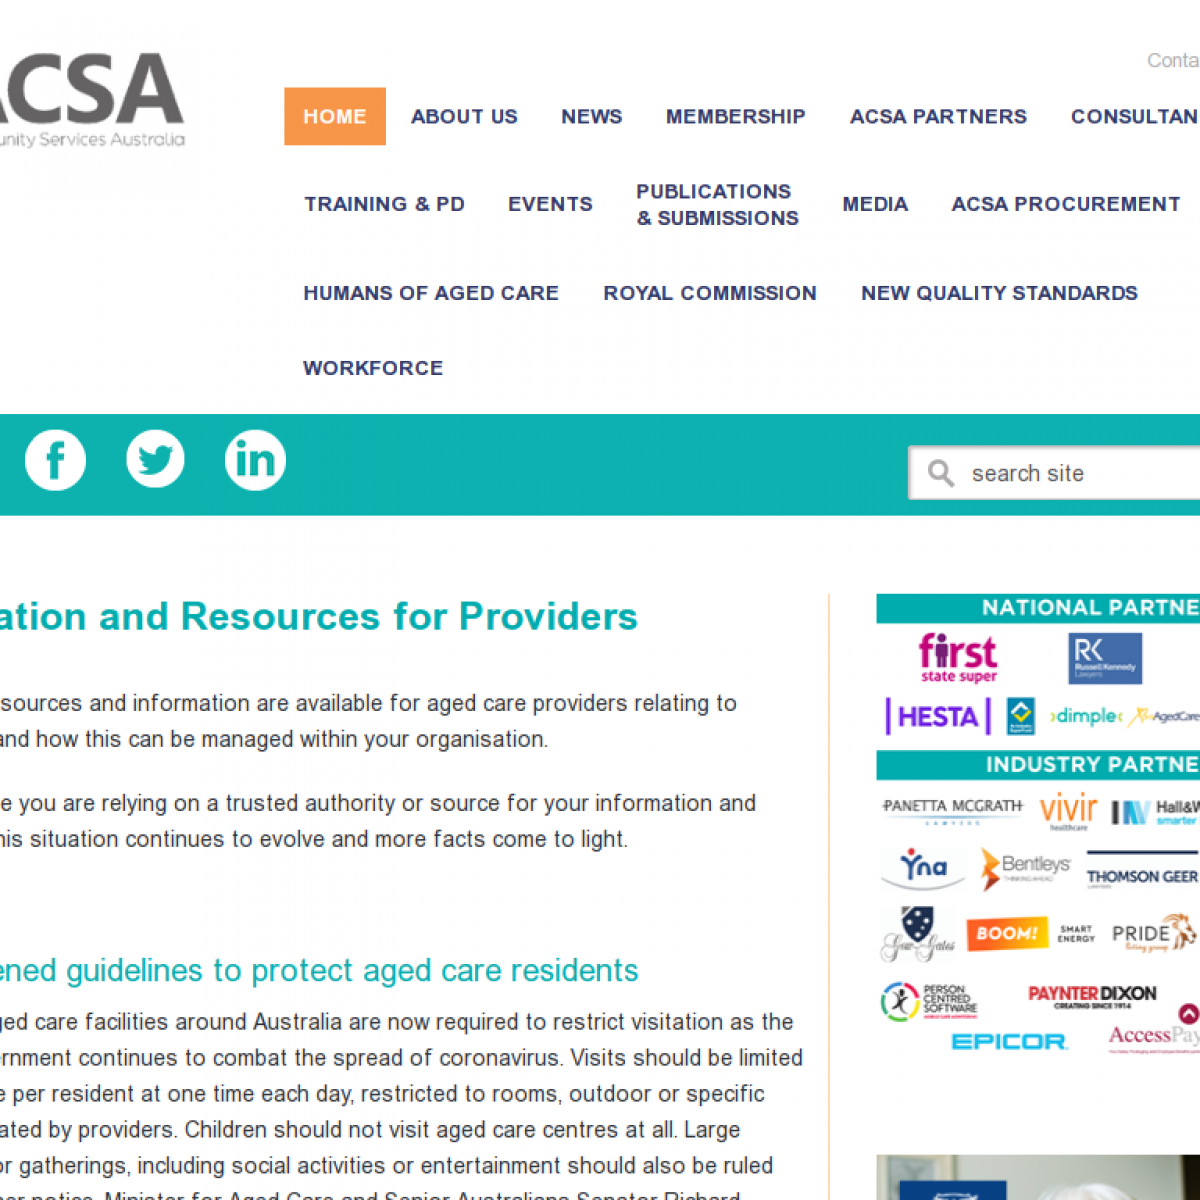 ACSA - Information and resources for providers